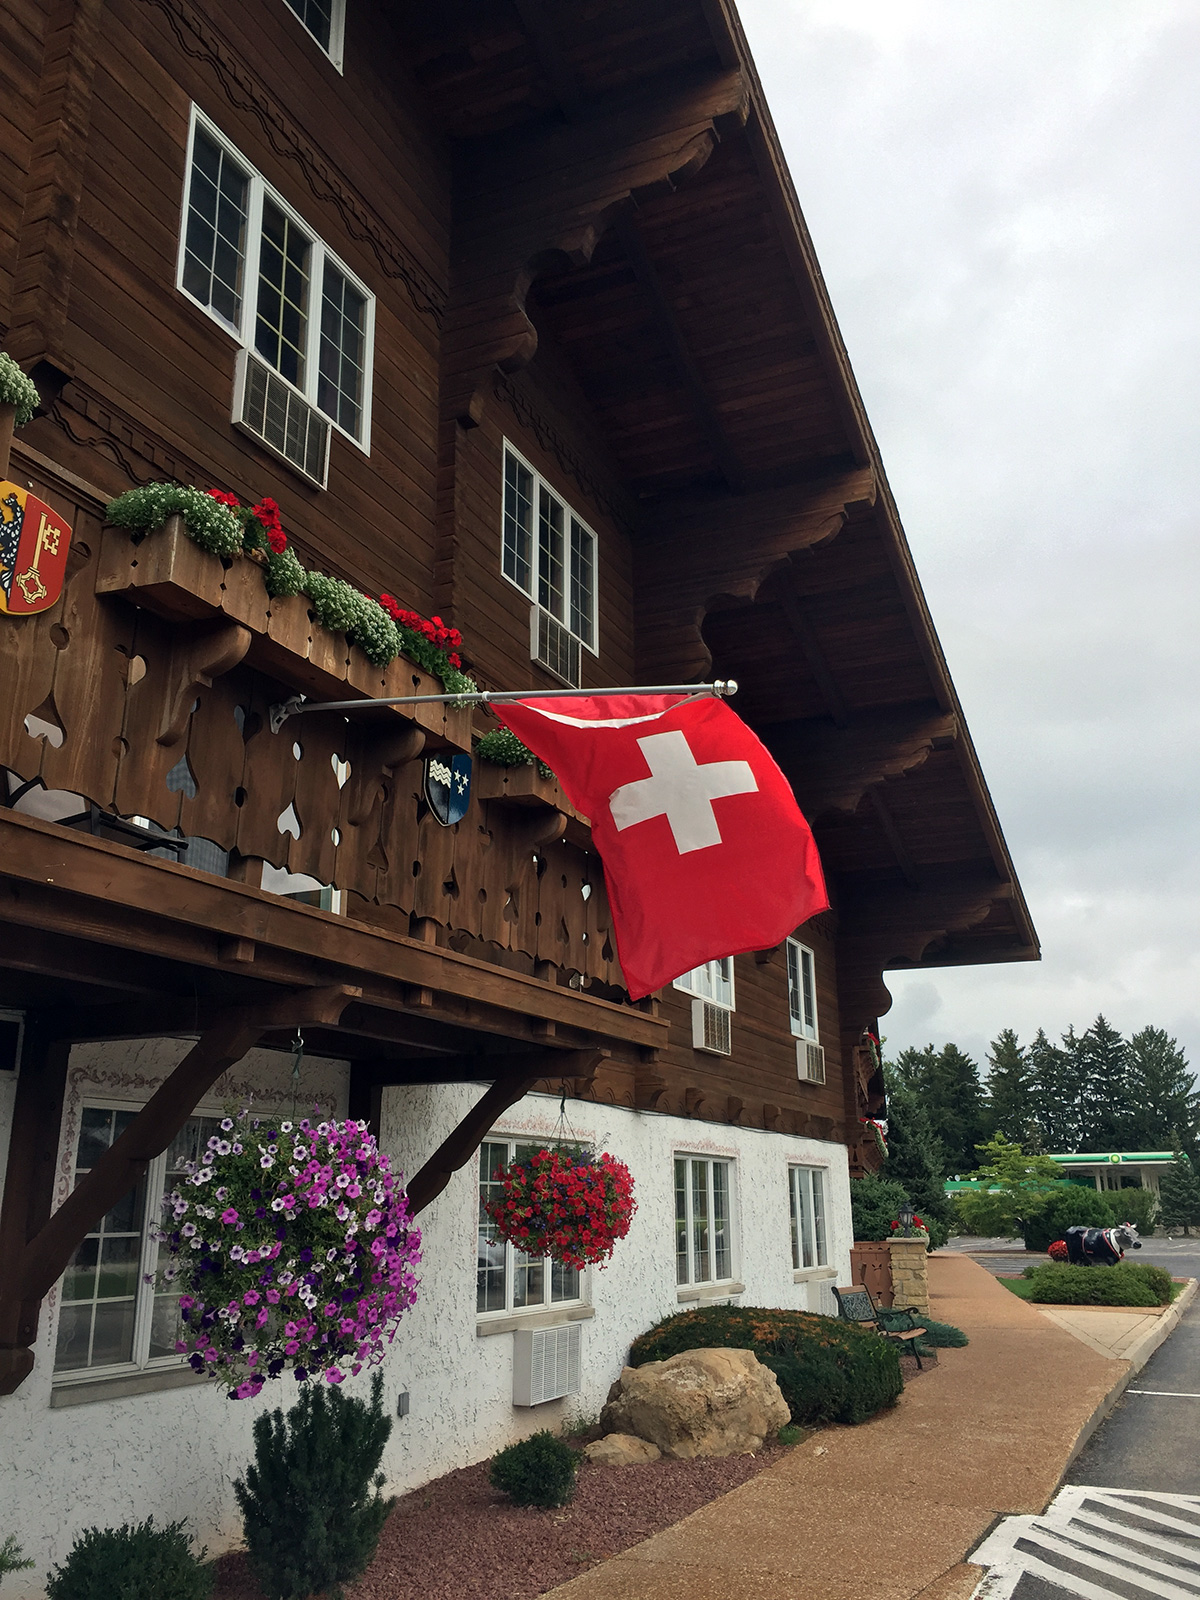 Chalet Landhaus Inn in New Glarus, WI by Jets Like Taxis